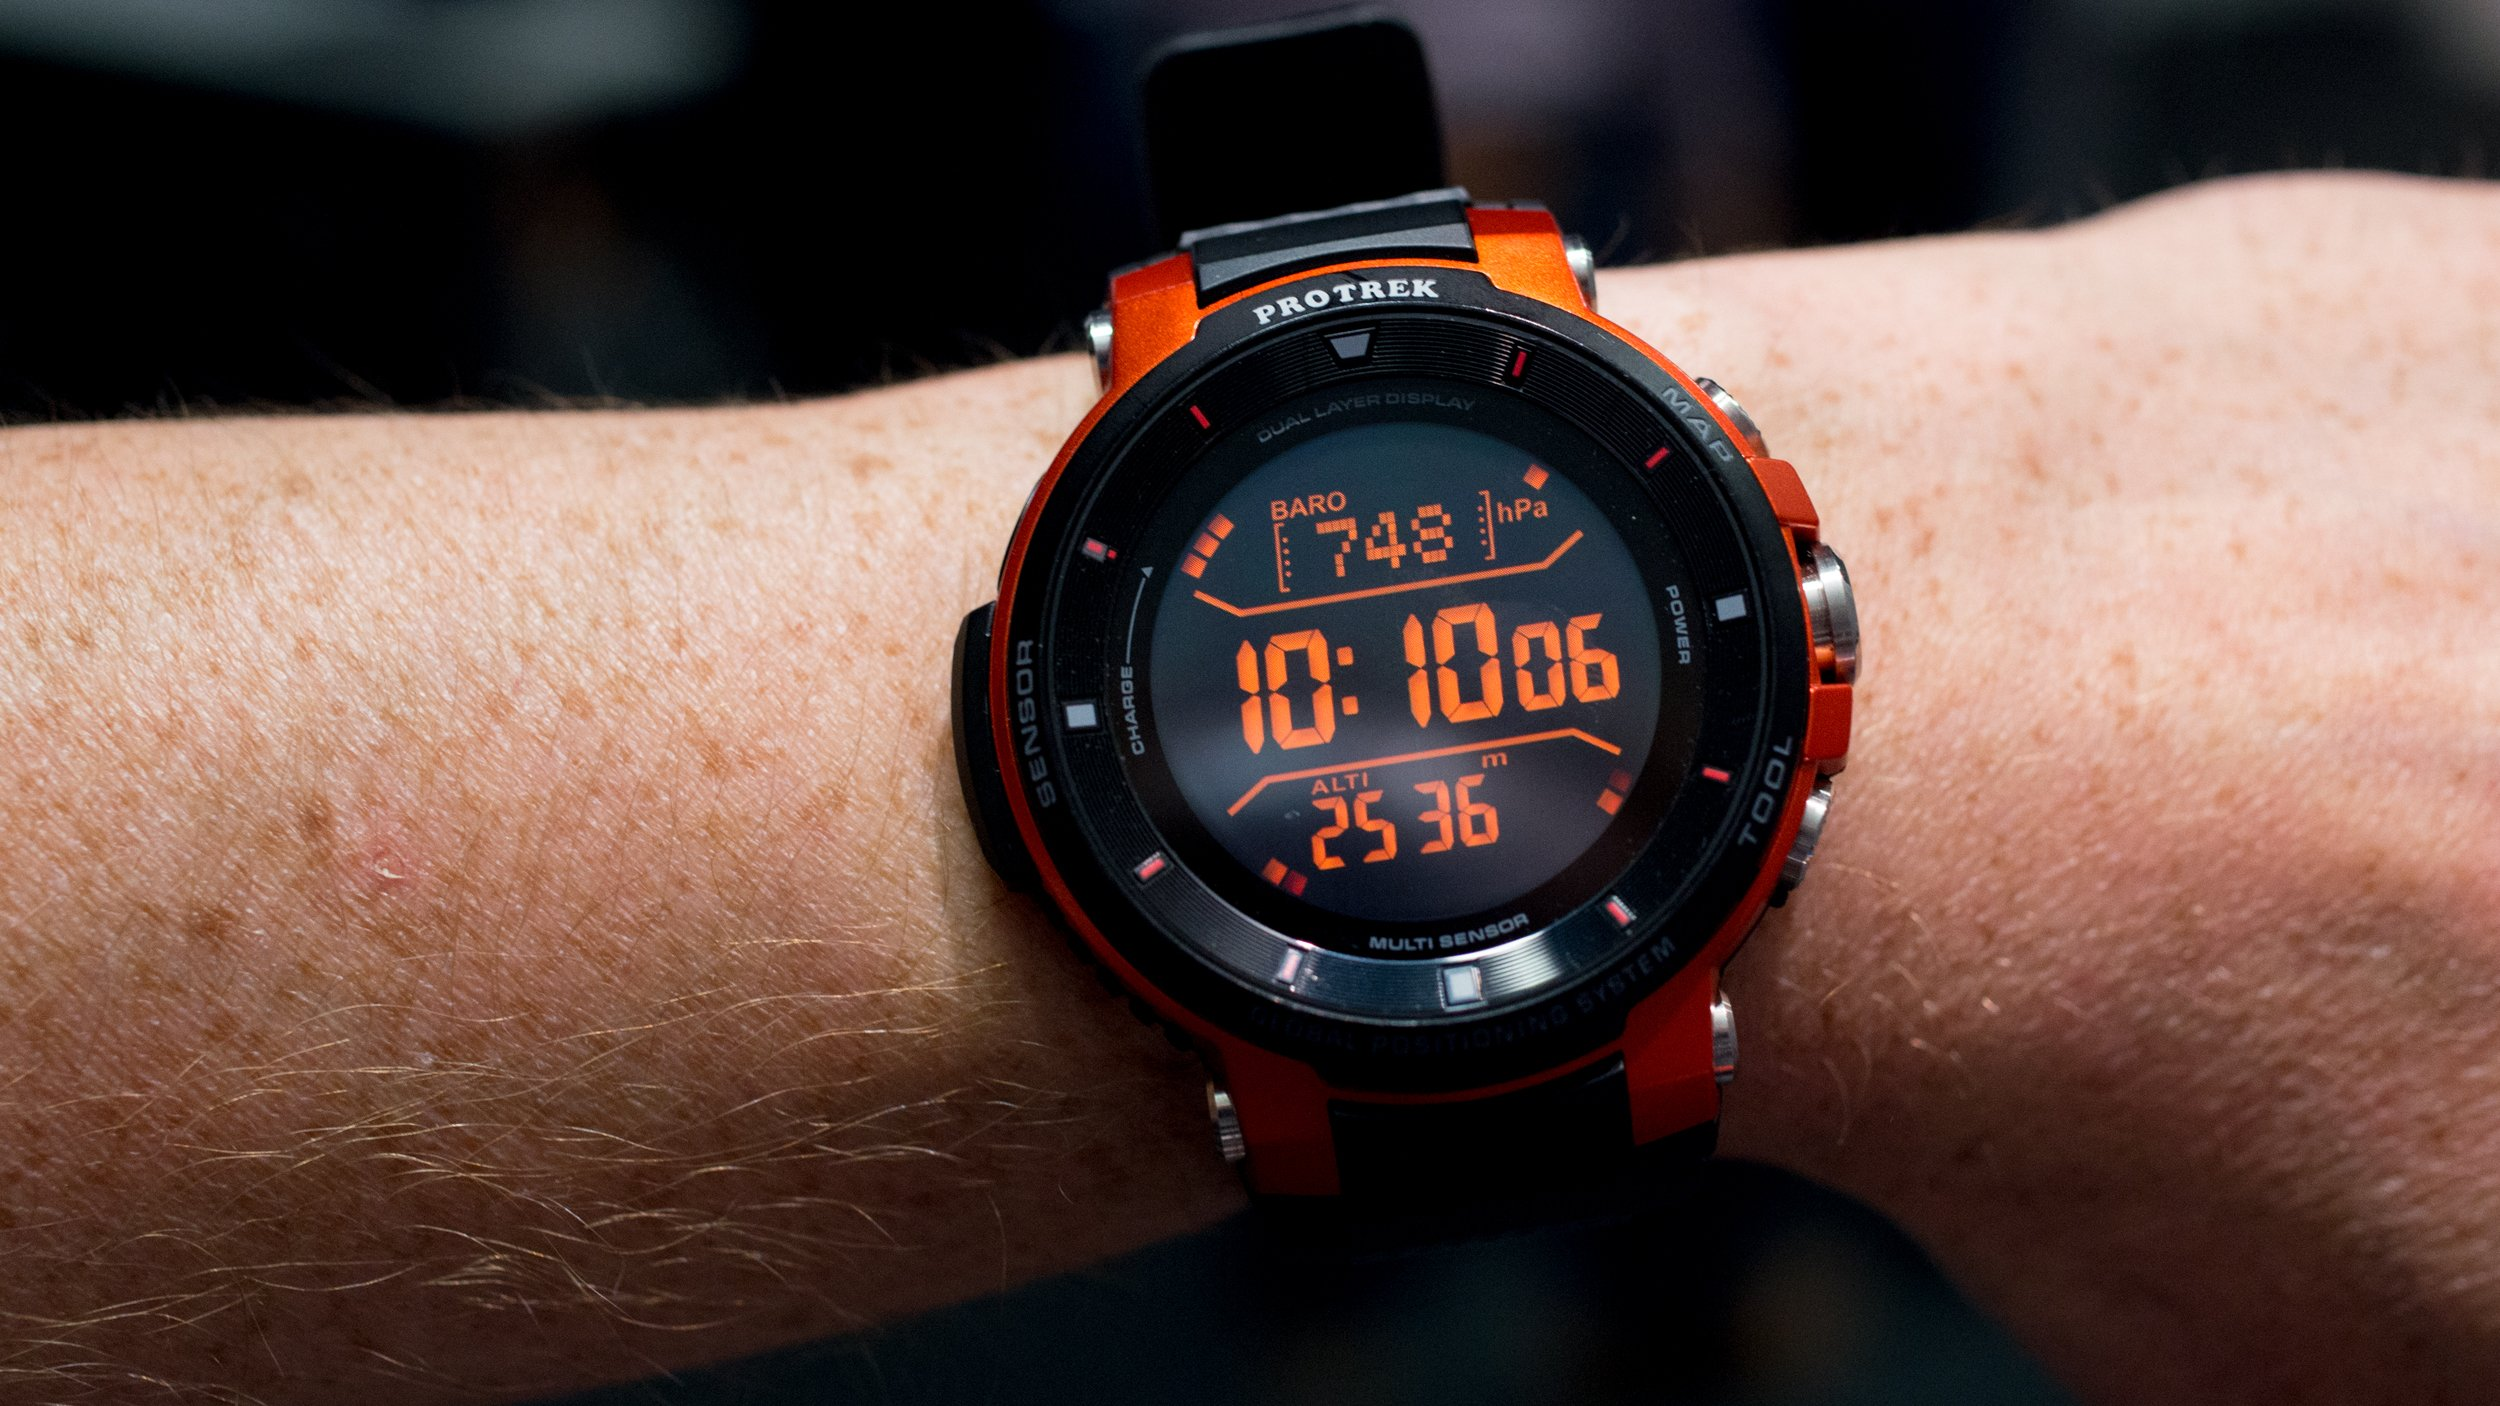 Casio Pro Trek Wsd F30 Review Hands On With Casio S Tough